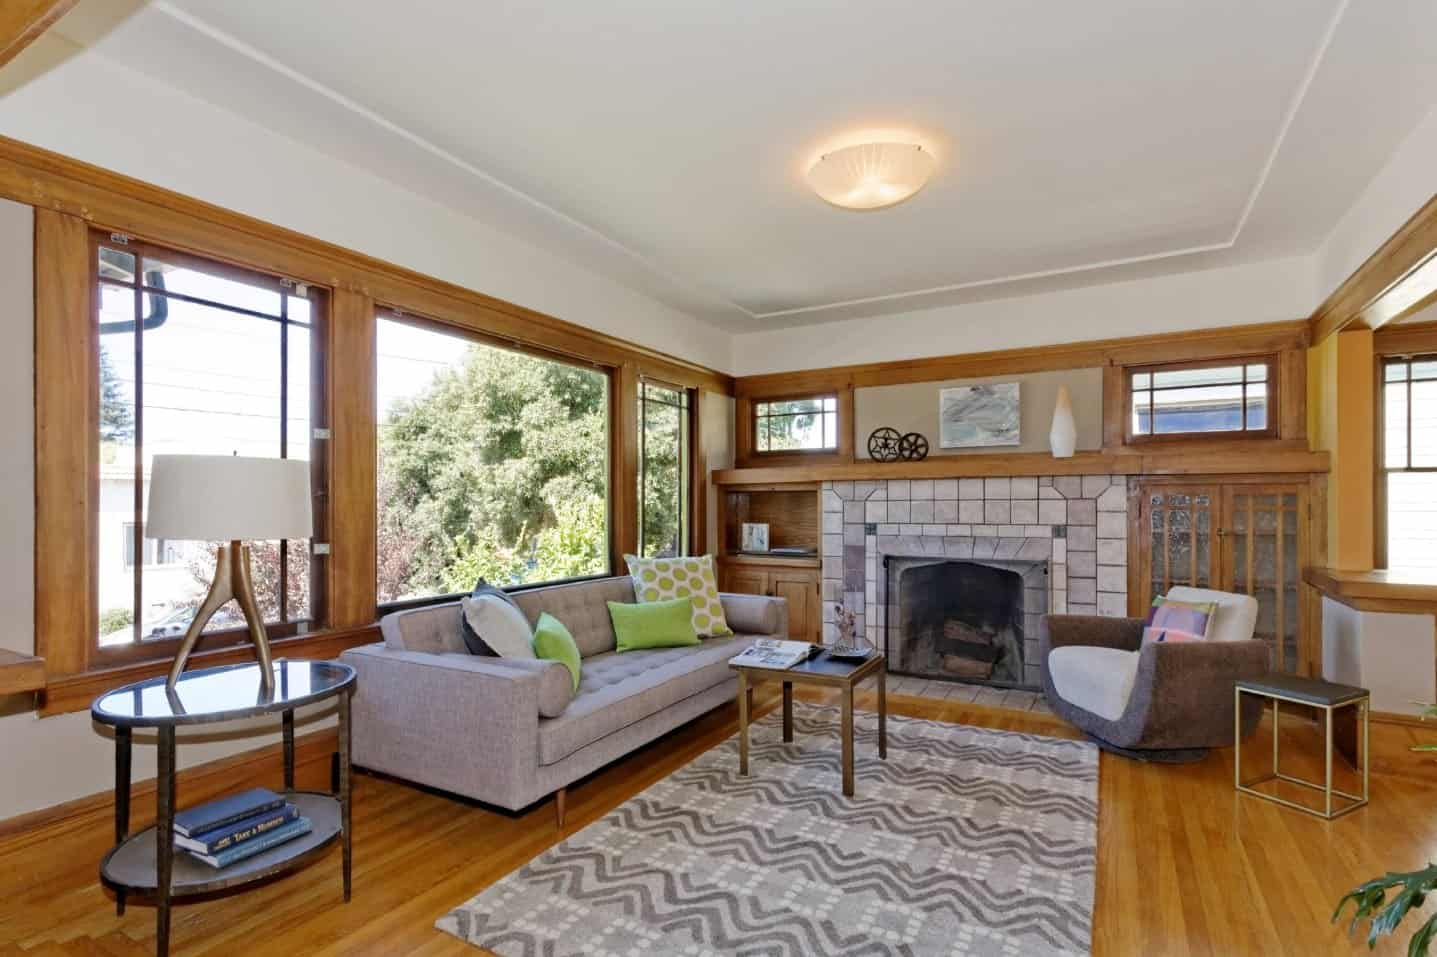 40 Craftsman-Style Living Room Ideas (Photos)